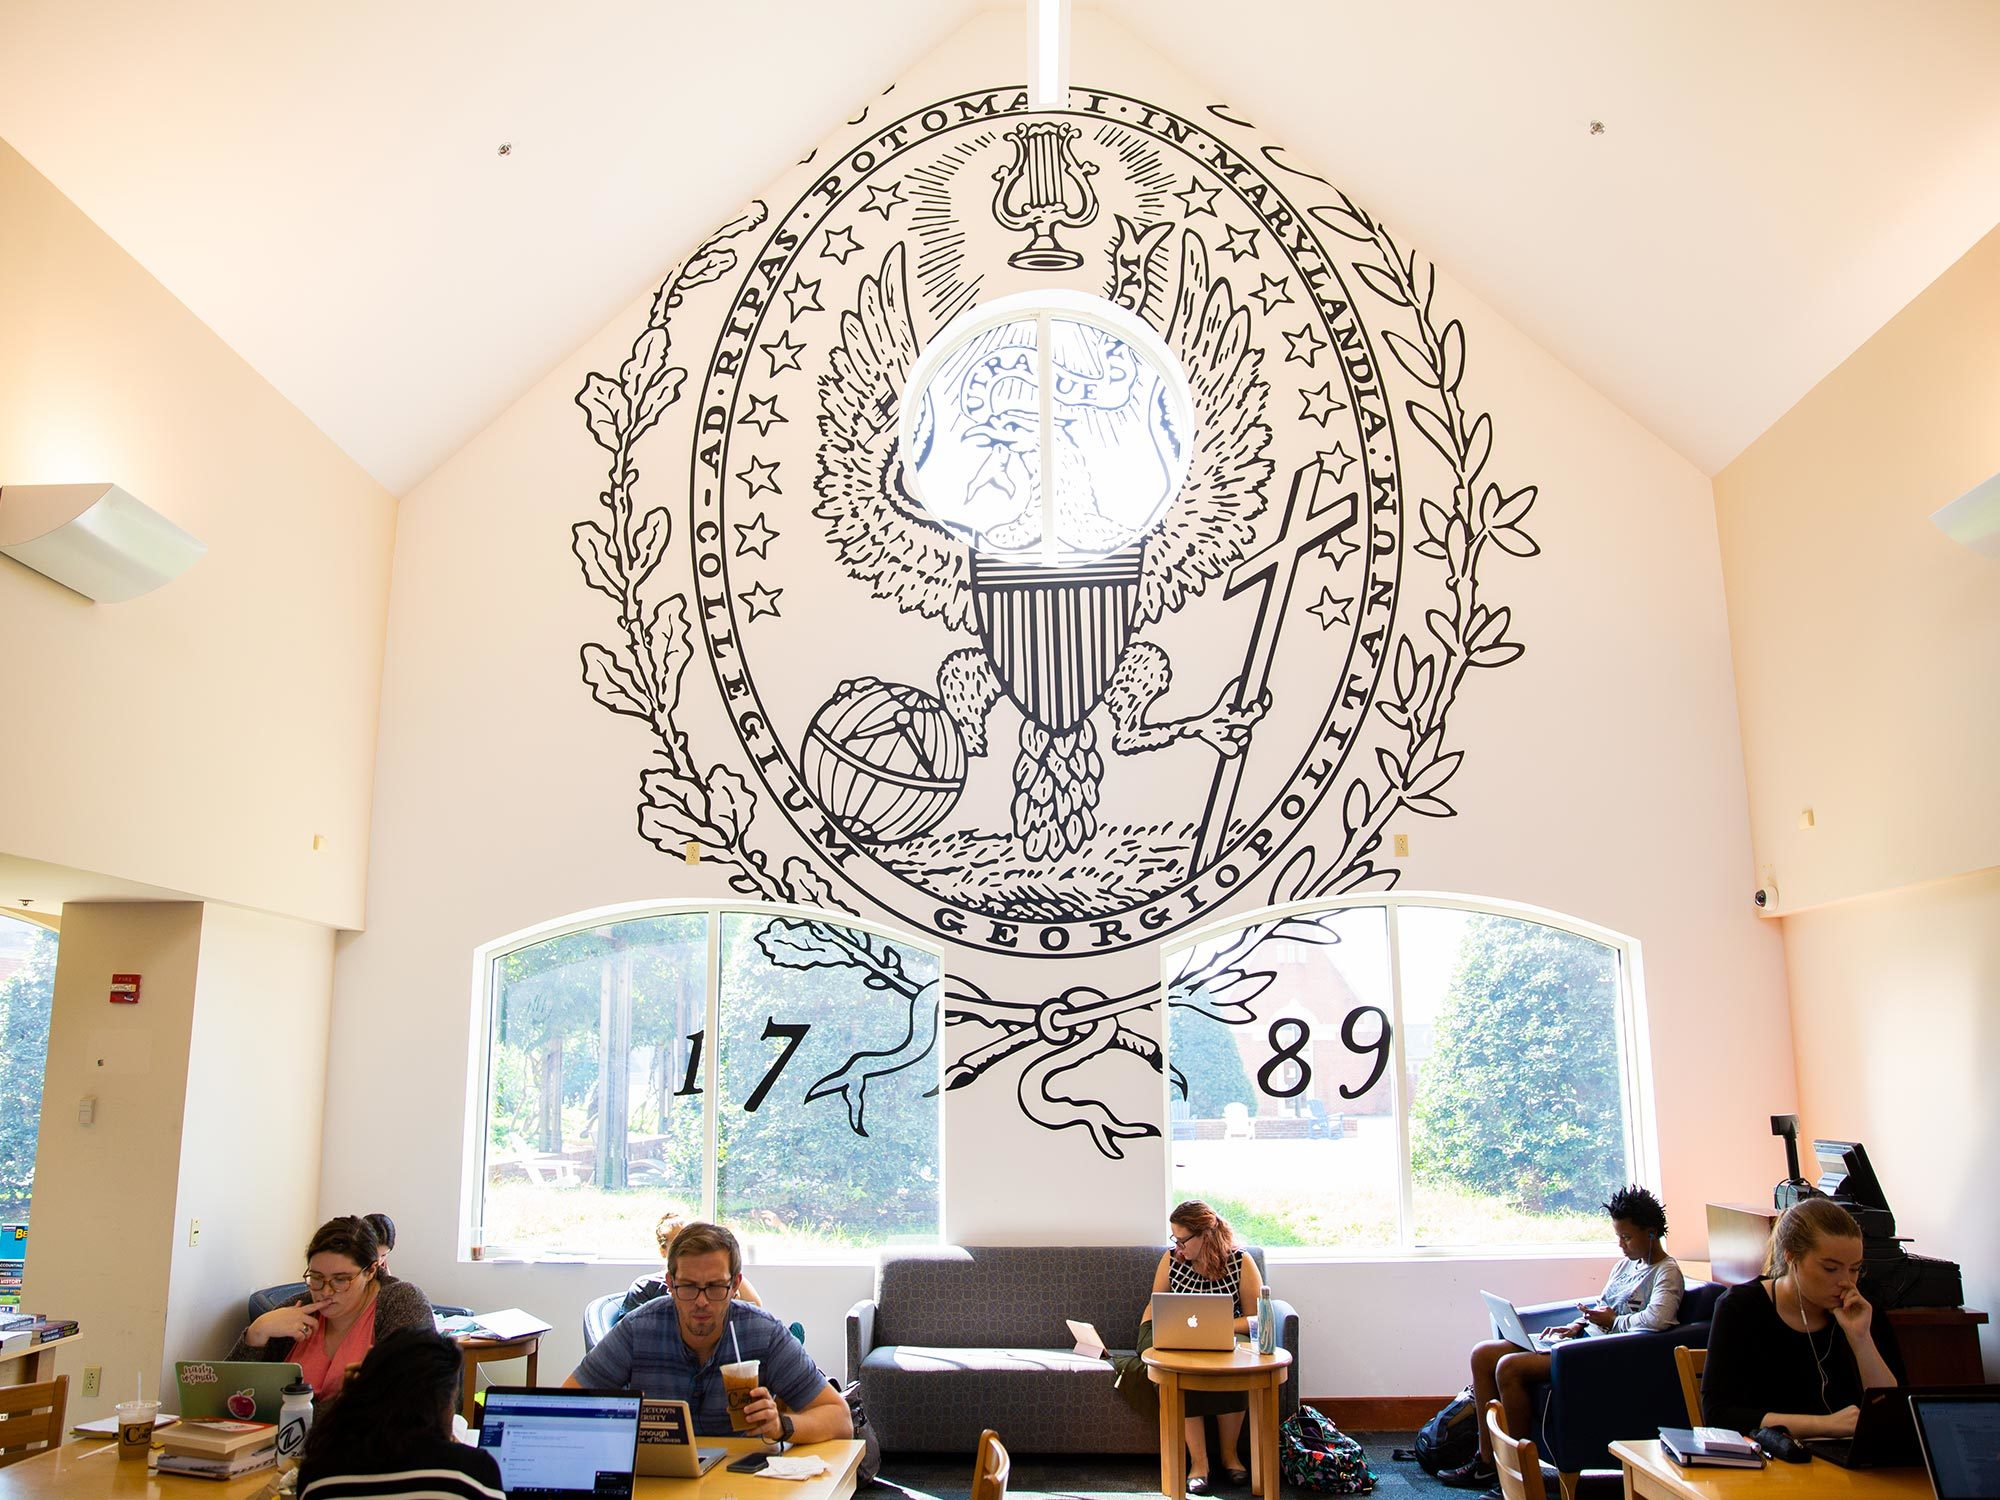 Students study at the Corp's Leavey Center coffee shop.